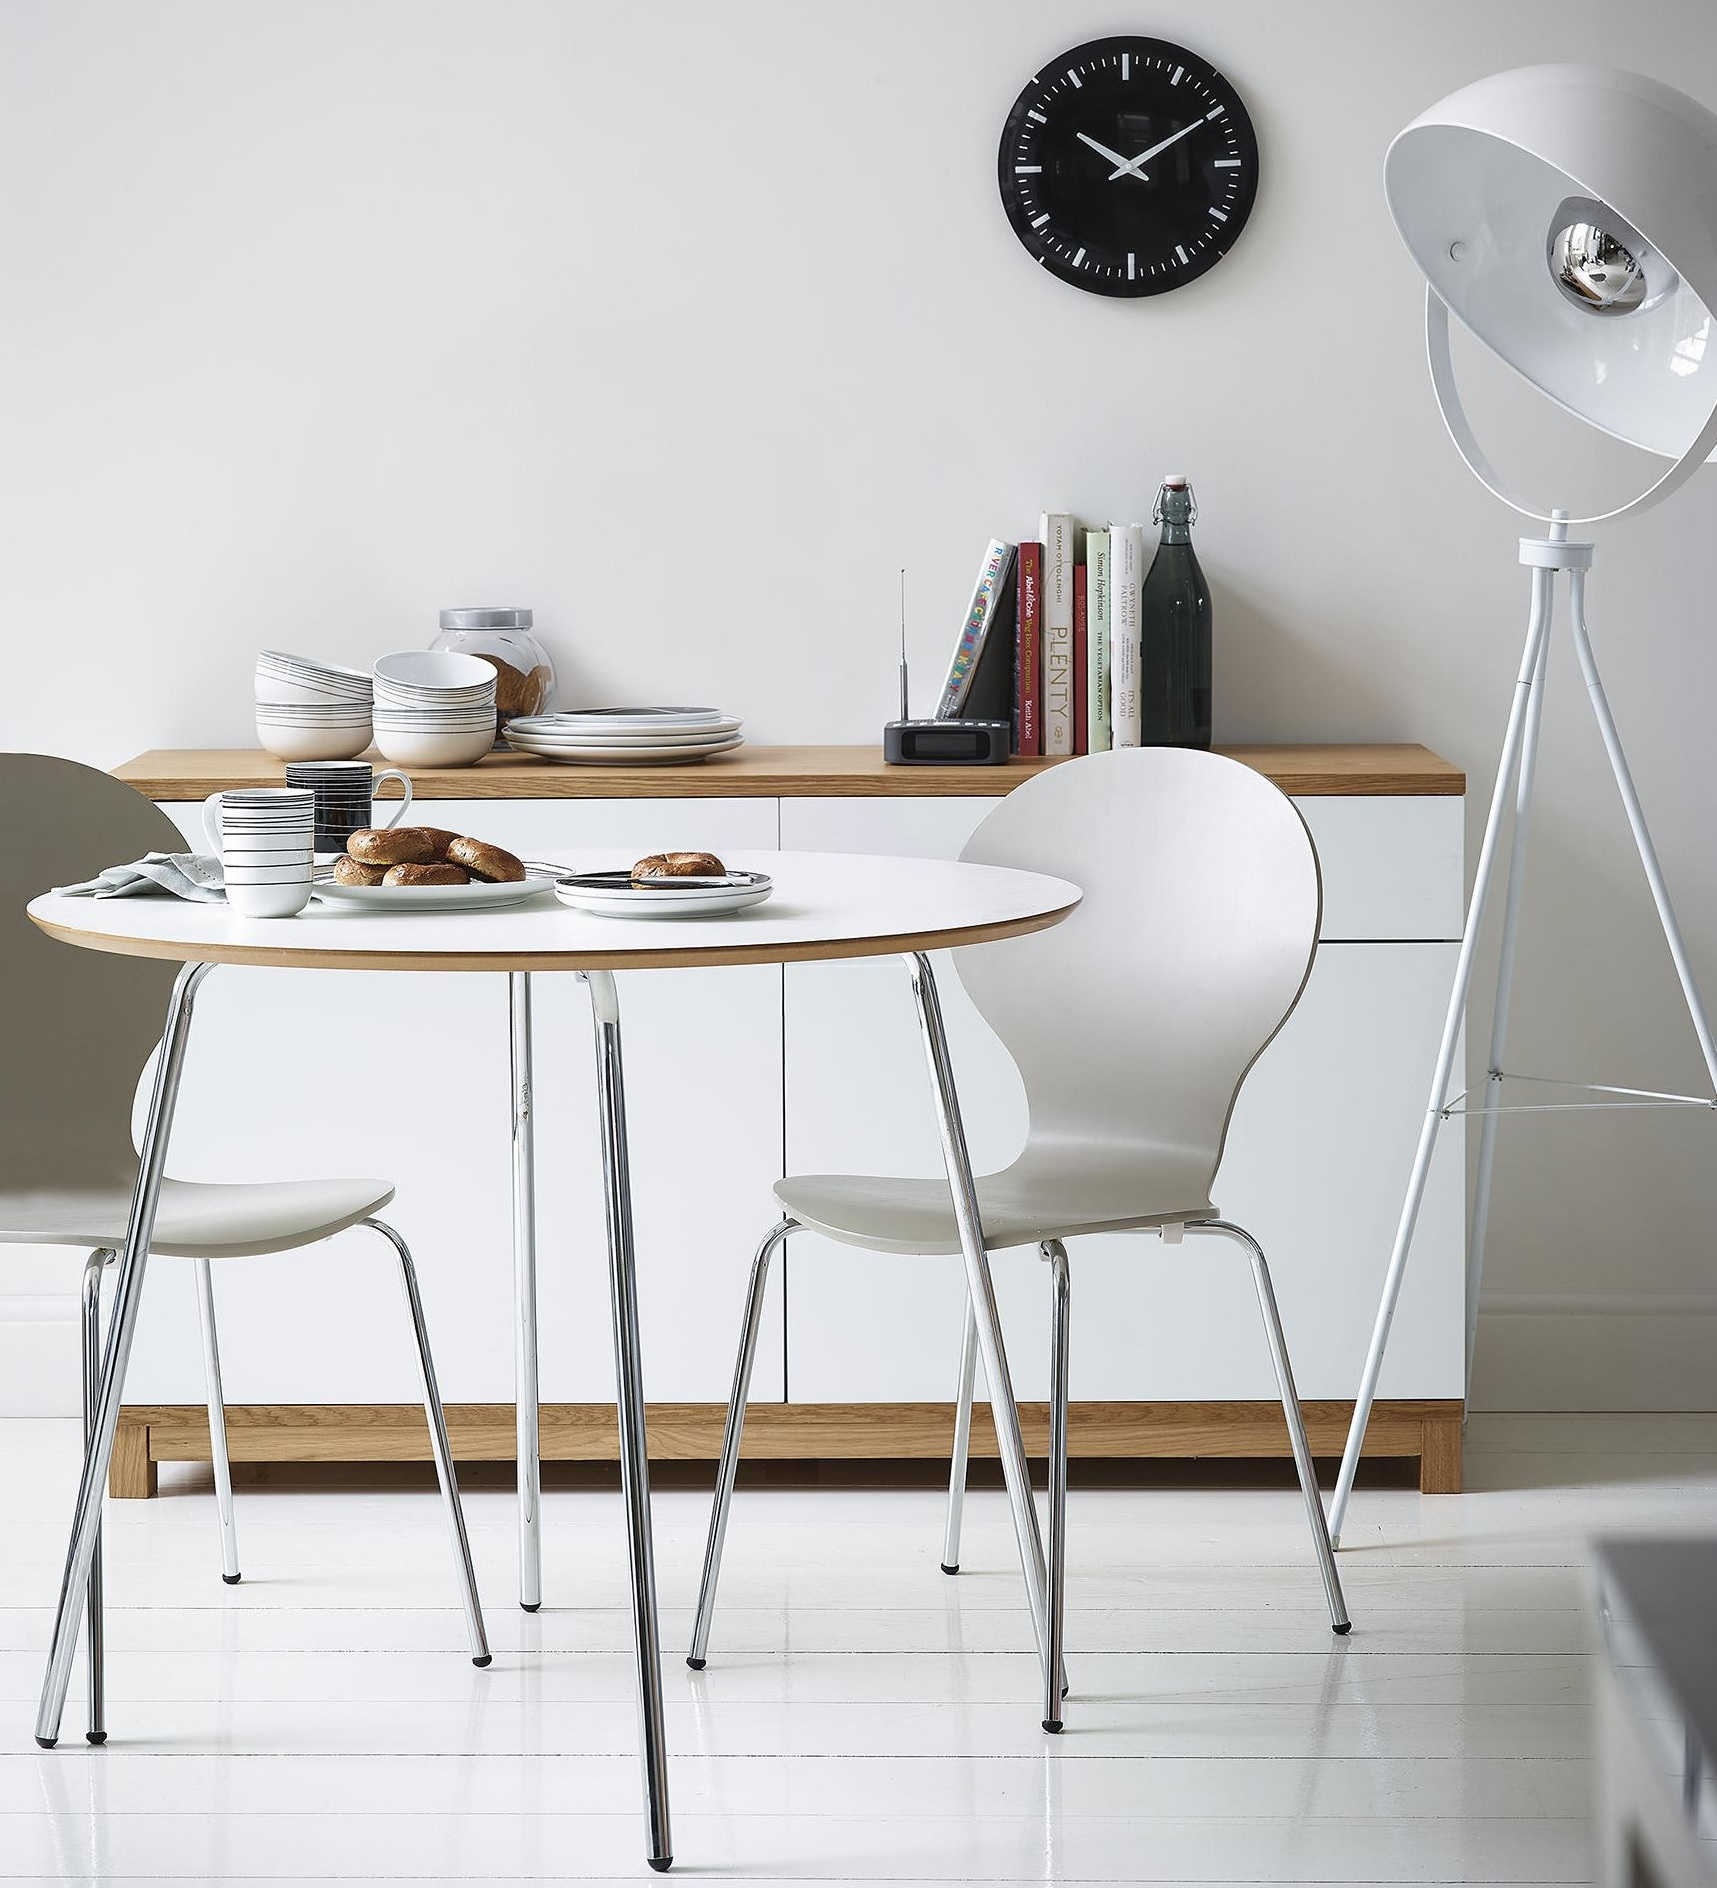 NEW Tesco Set of 4 Wood amp Metal Stacking Bistro Dining  : 5054268370363 from www.ebay.co.uk size 1717 x 1888 jpeg 502kB